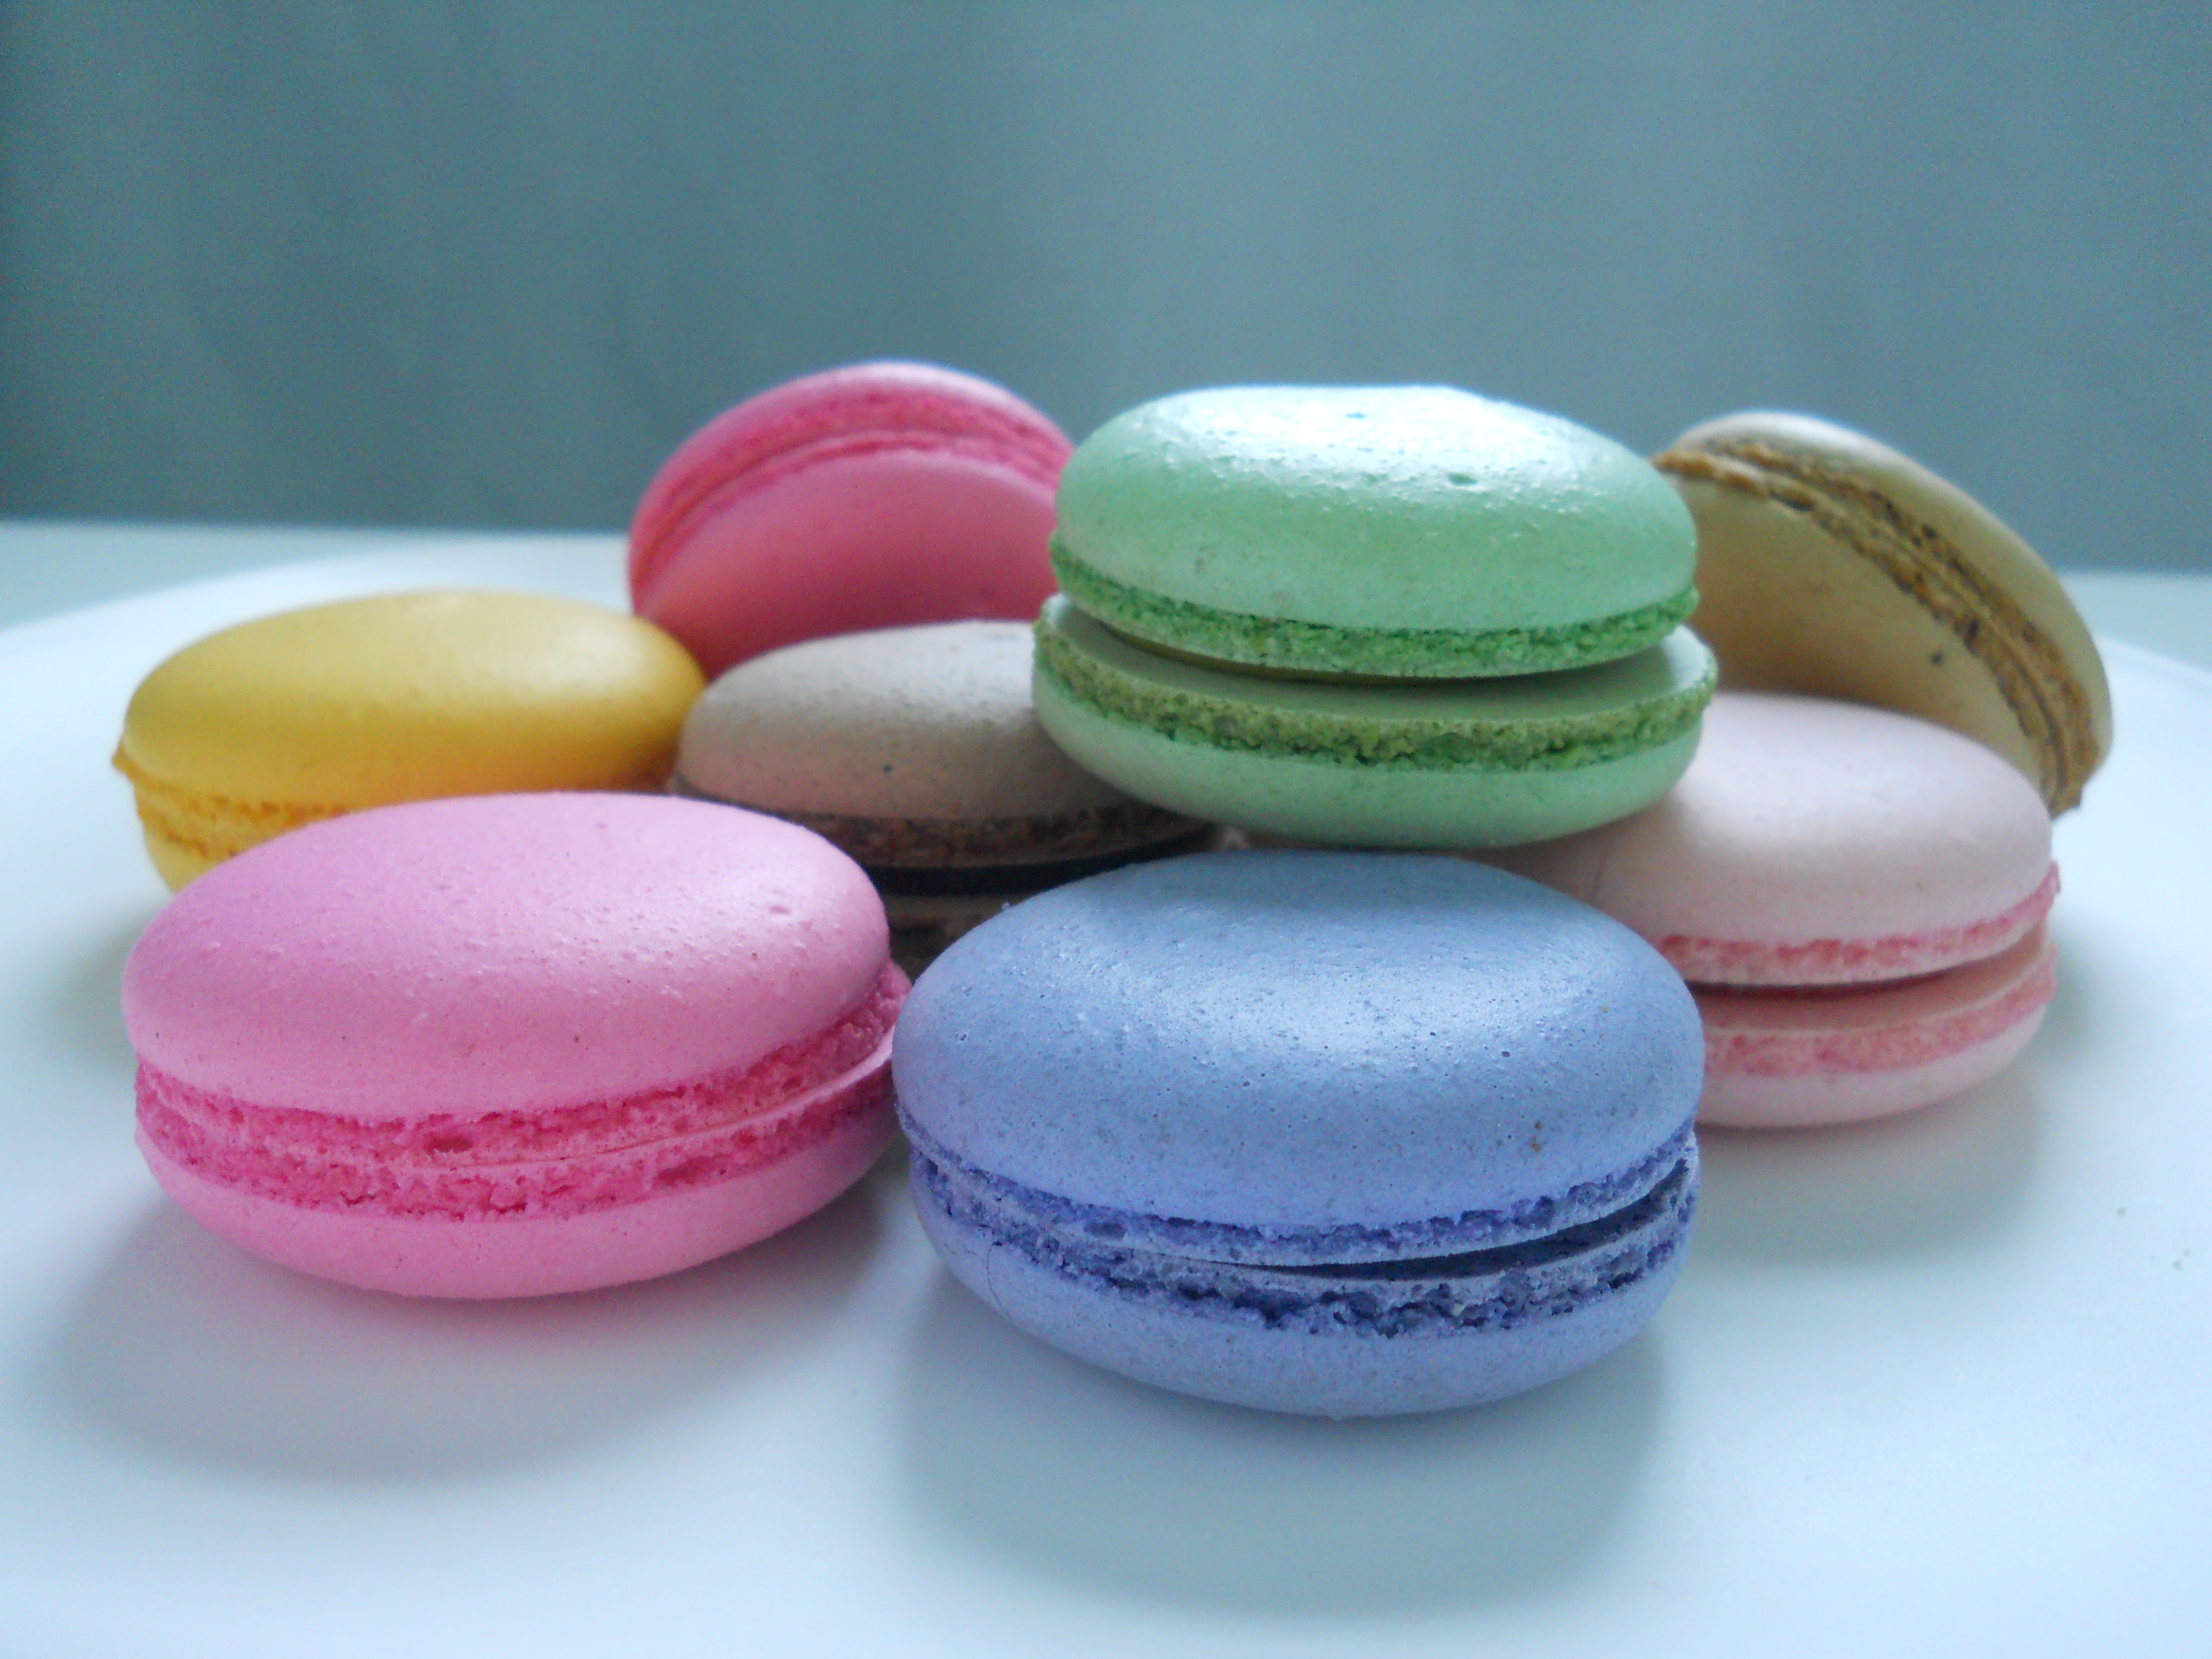 macaron bakery These macarons are amazing dana's bakery has taken the traditional french macaron to a new level by creating uniquely american flavors inspired by classic desserts, pastries, candy and sweet treats.